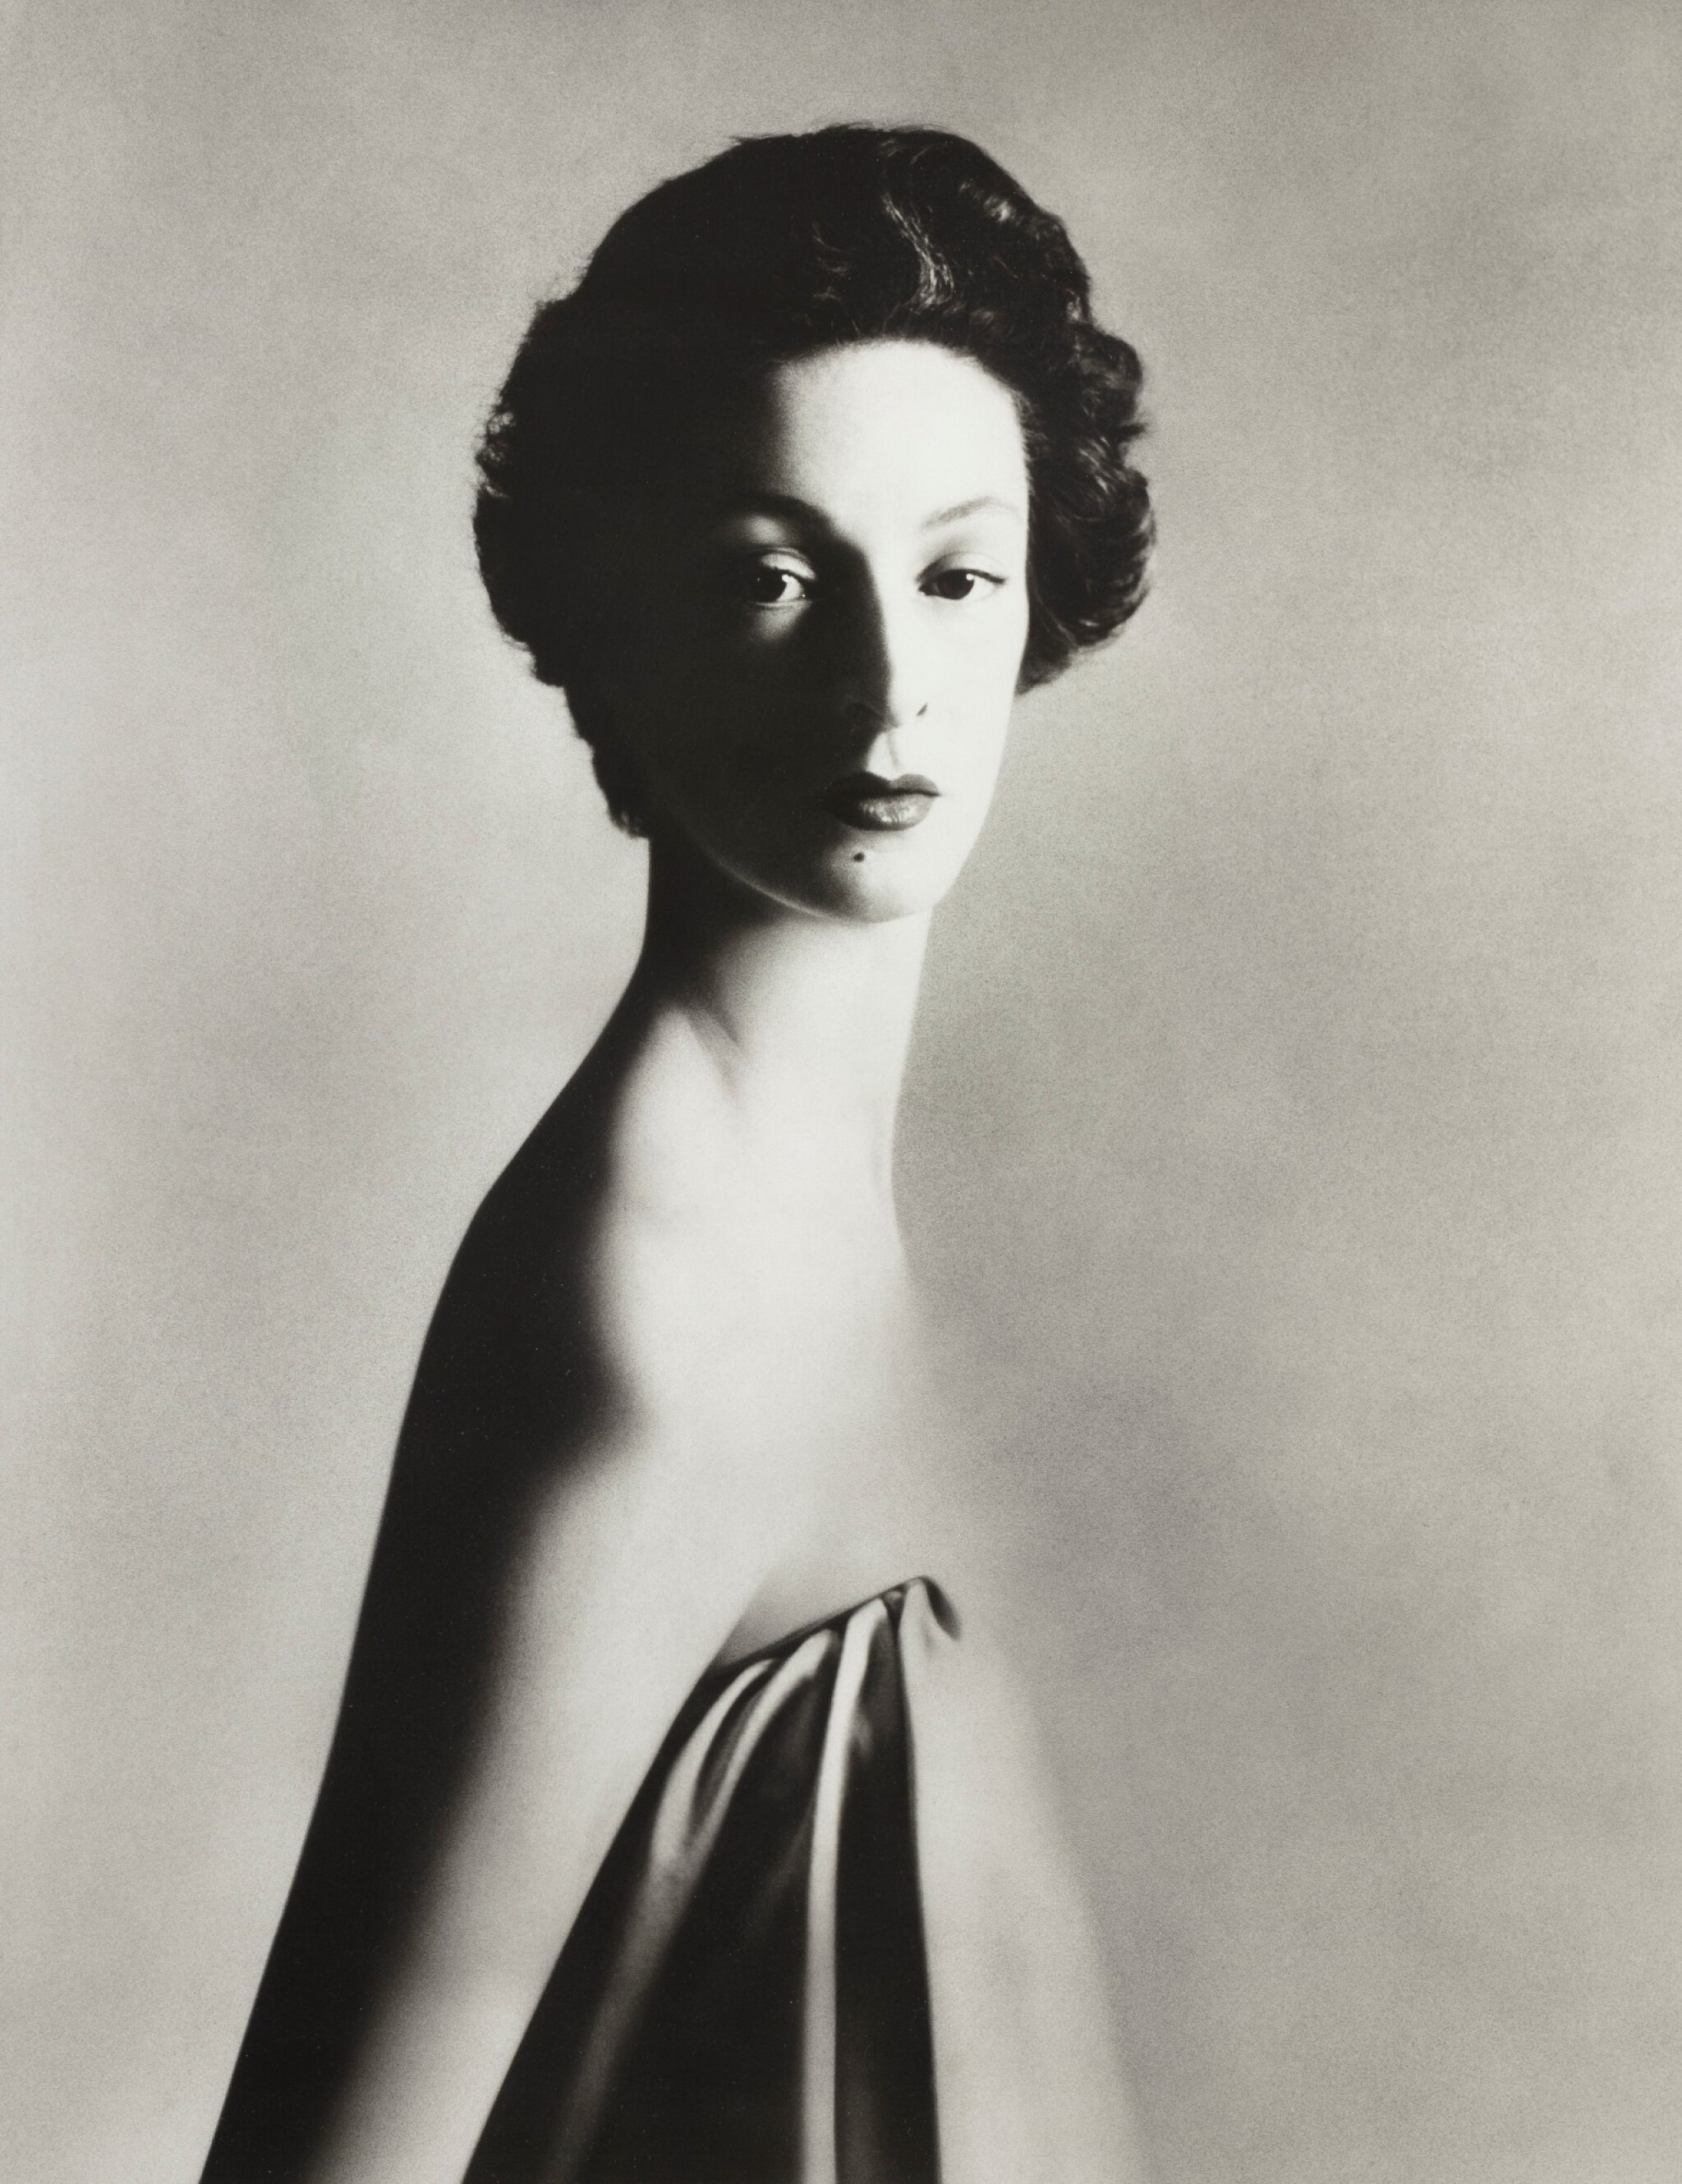 View full screen - View 1 of Lot 6. Marella Agnelli, NYC, 1953.